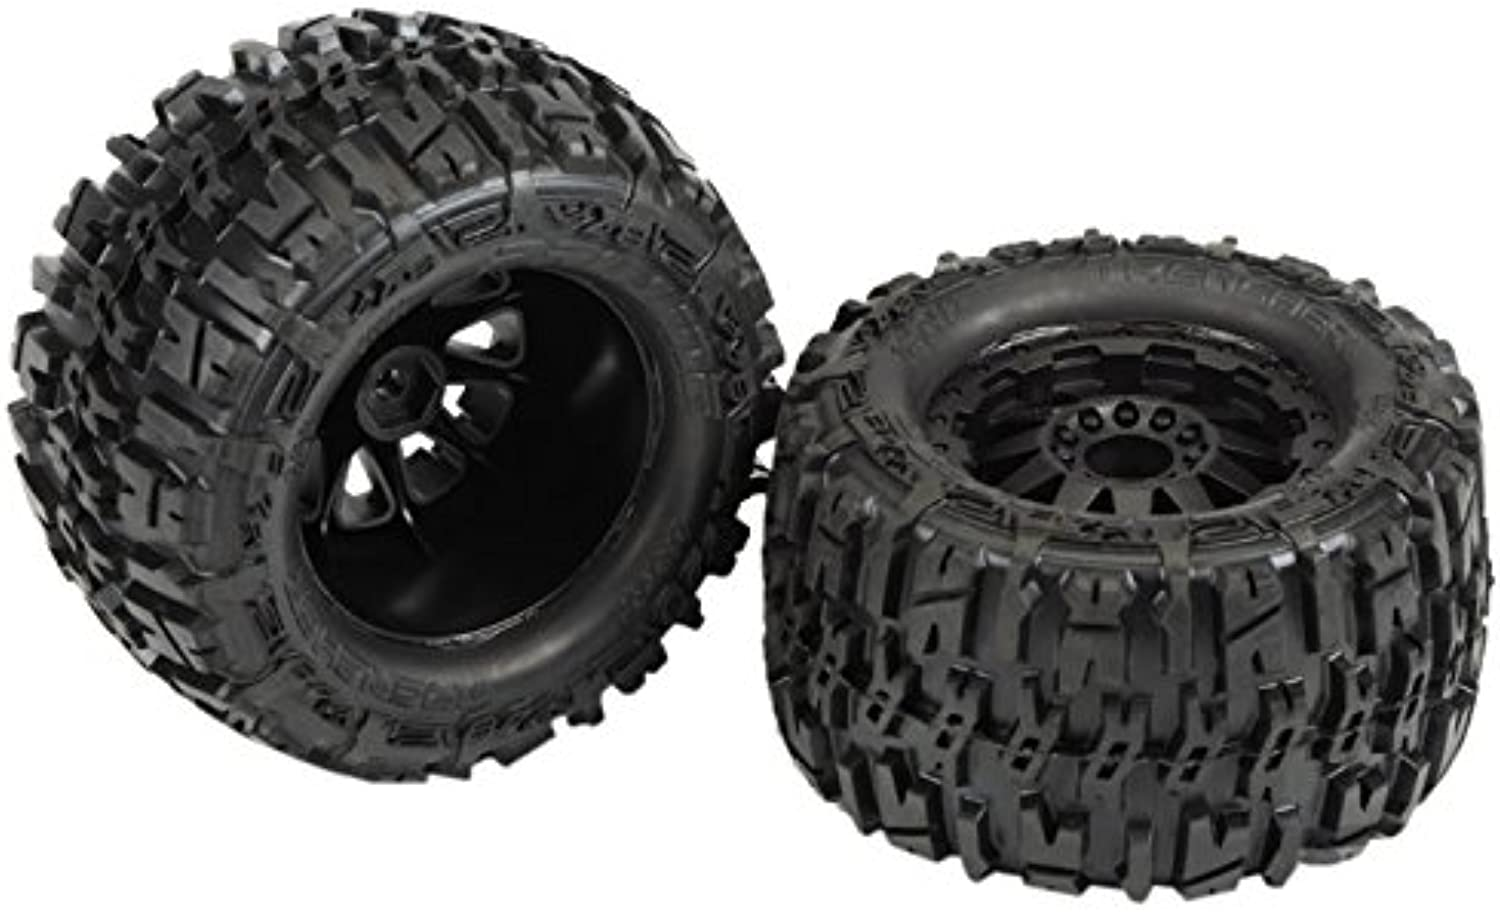 Proline 117015 Trencher 2.8 All Terrain Tires Mounted On F11 Rear Wheels (2 Piece), Black